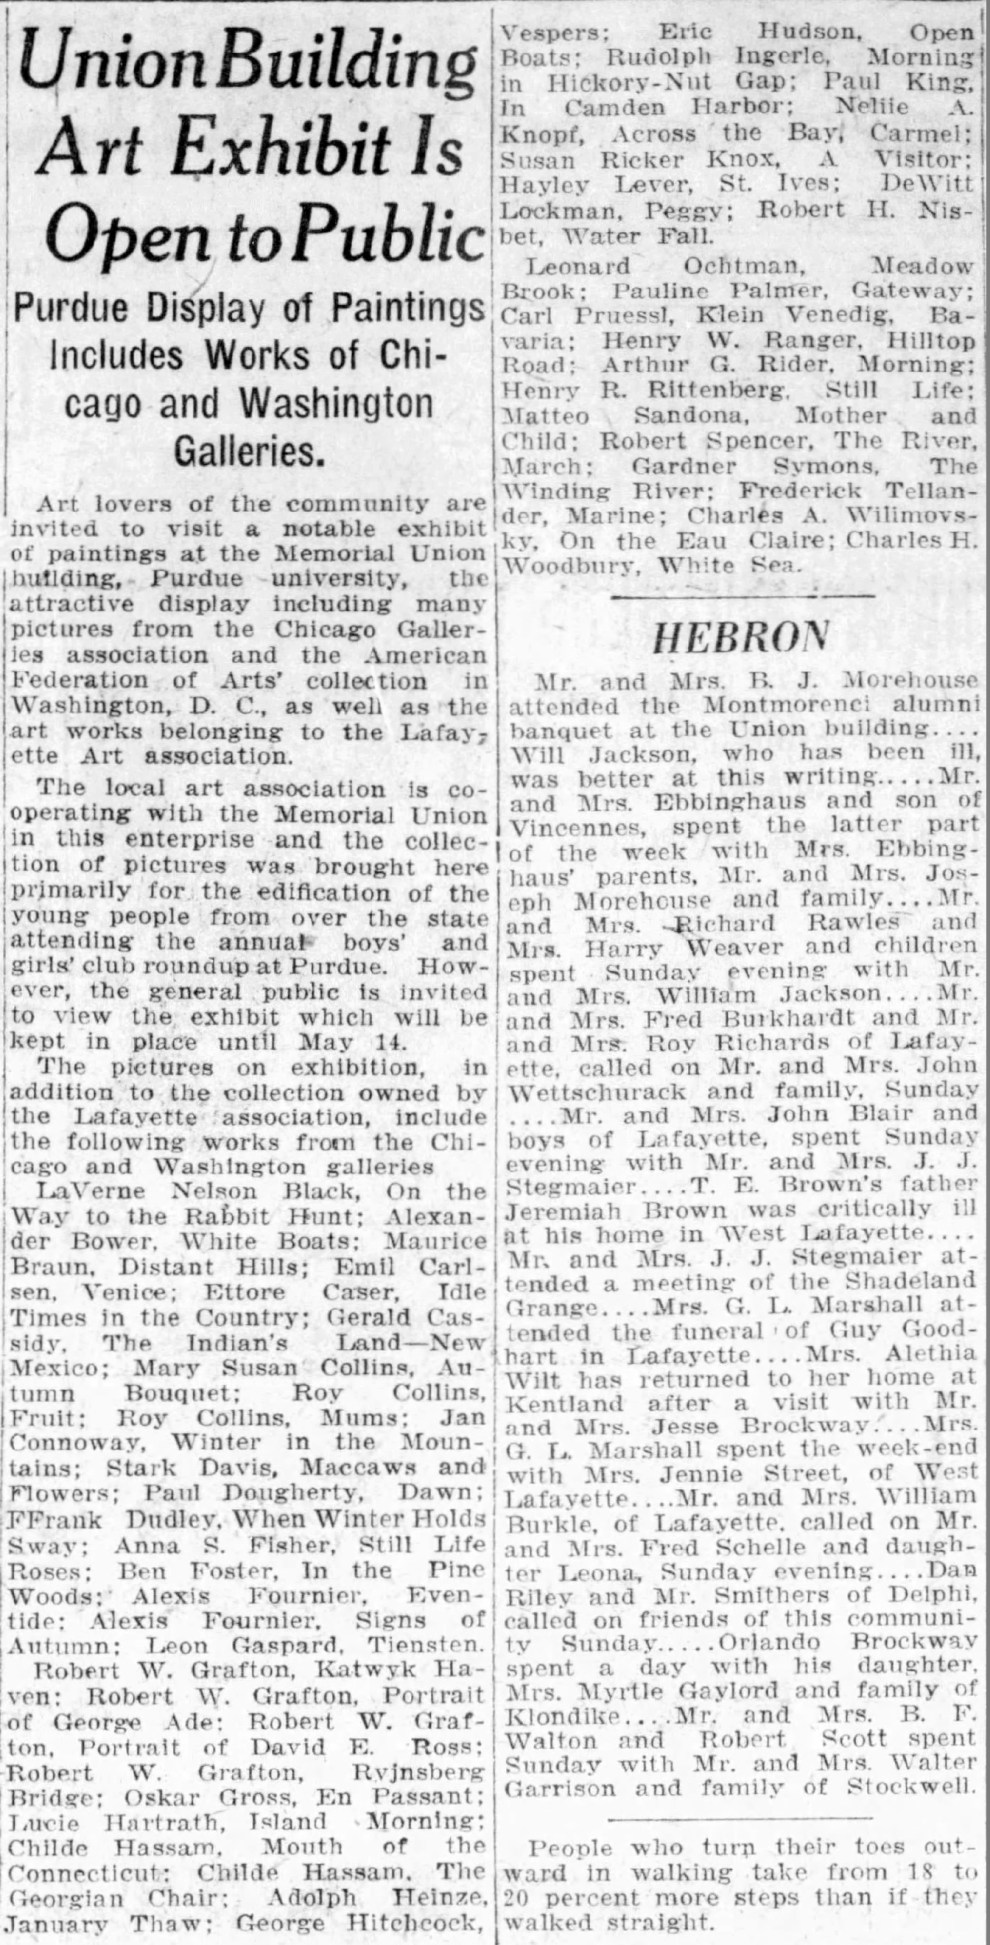 """Journal and Courier, Lafayette, IN, """"Union building art exhibit is open to public"""", Saturday, May 8, 1926, page 2, not illustrated"""